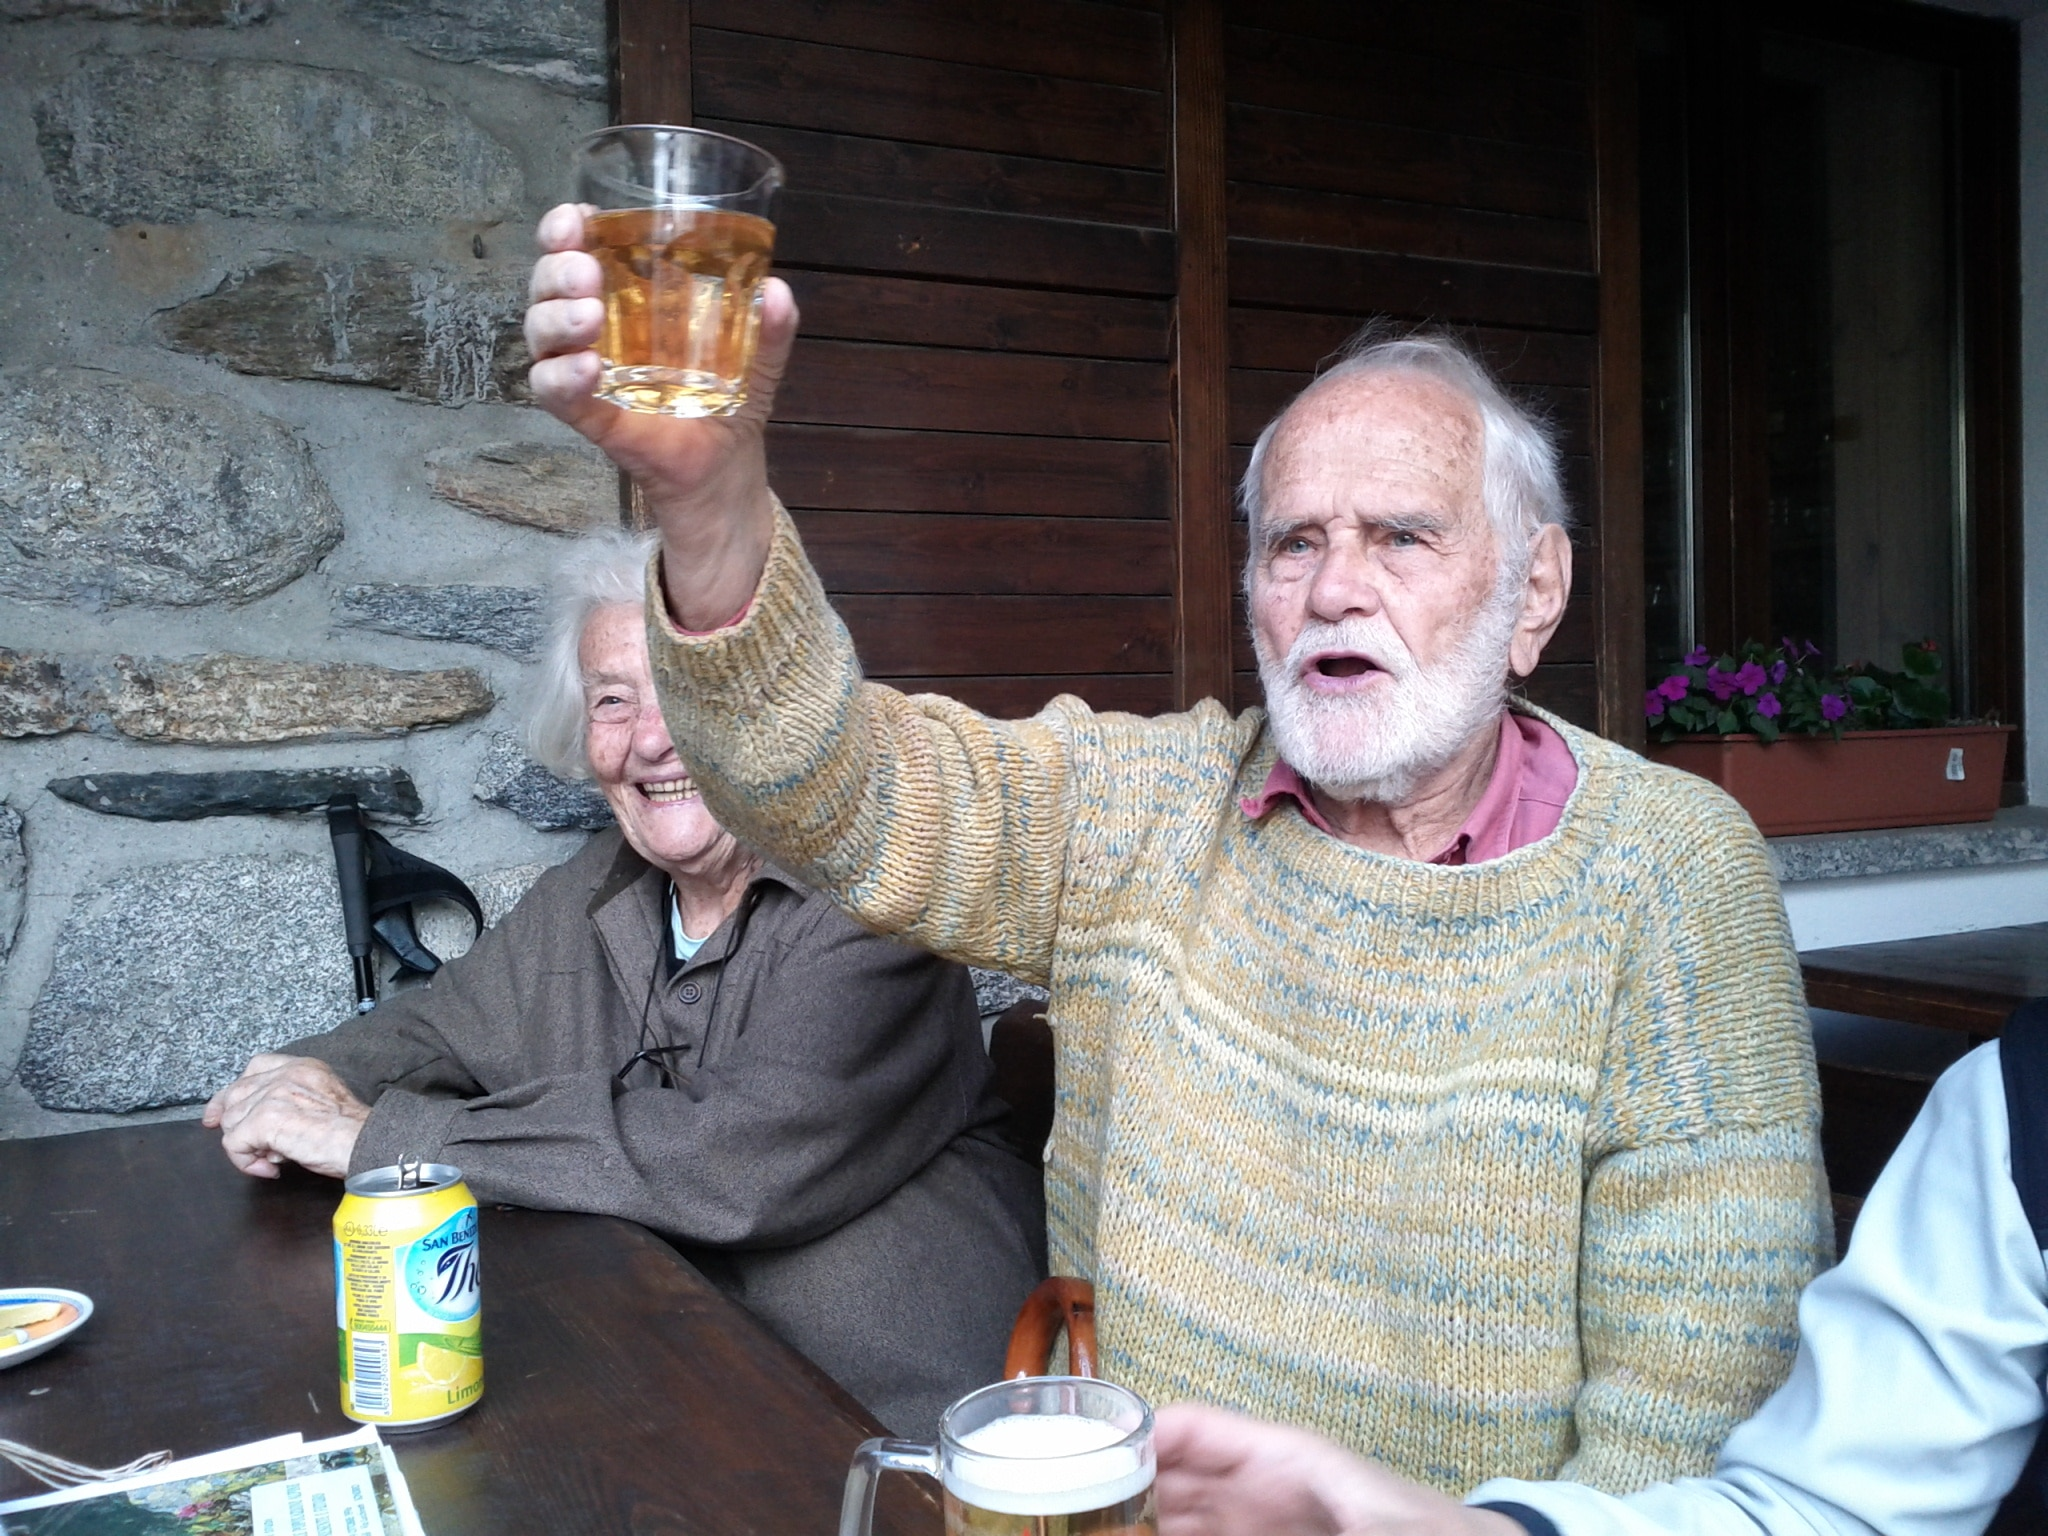 92-year old Linneo Corti toasting to good friends and good times.